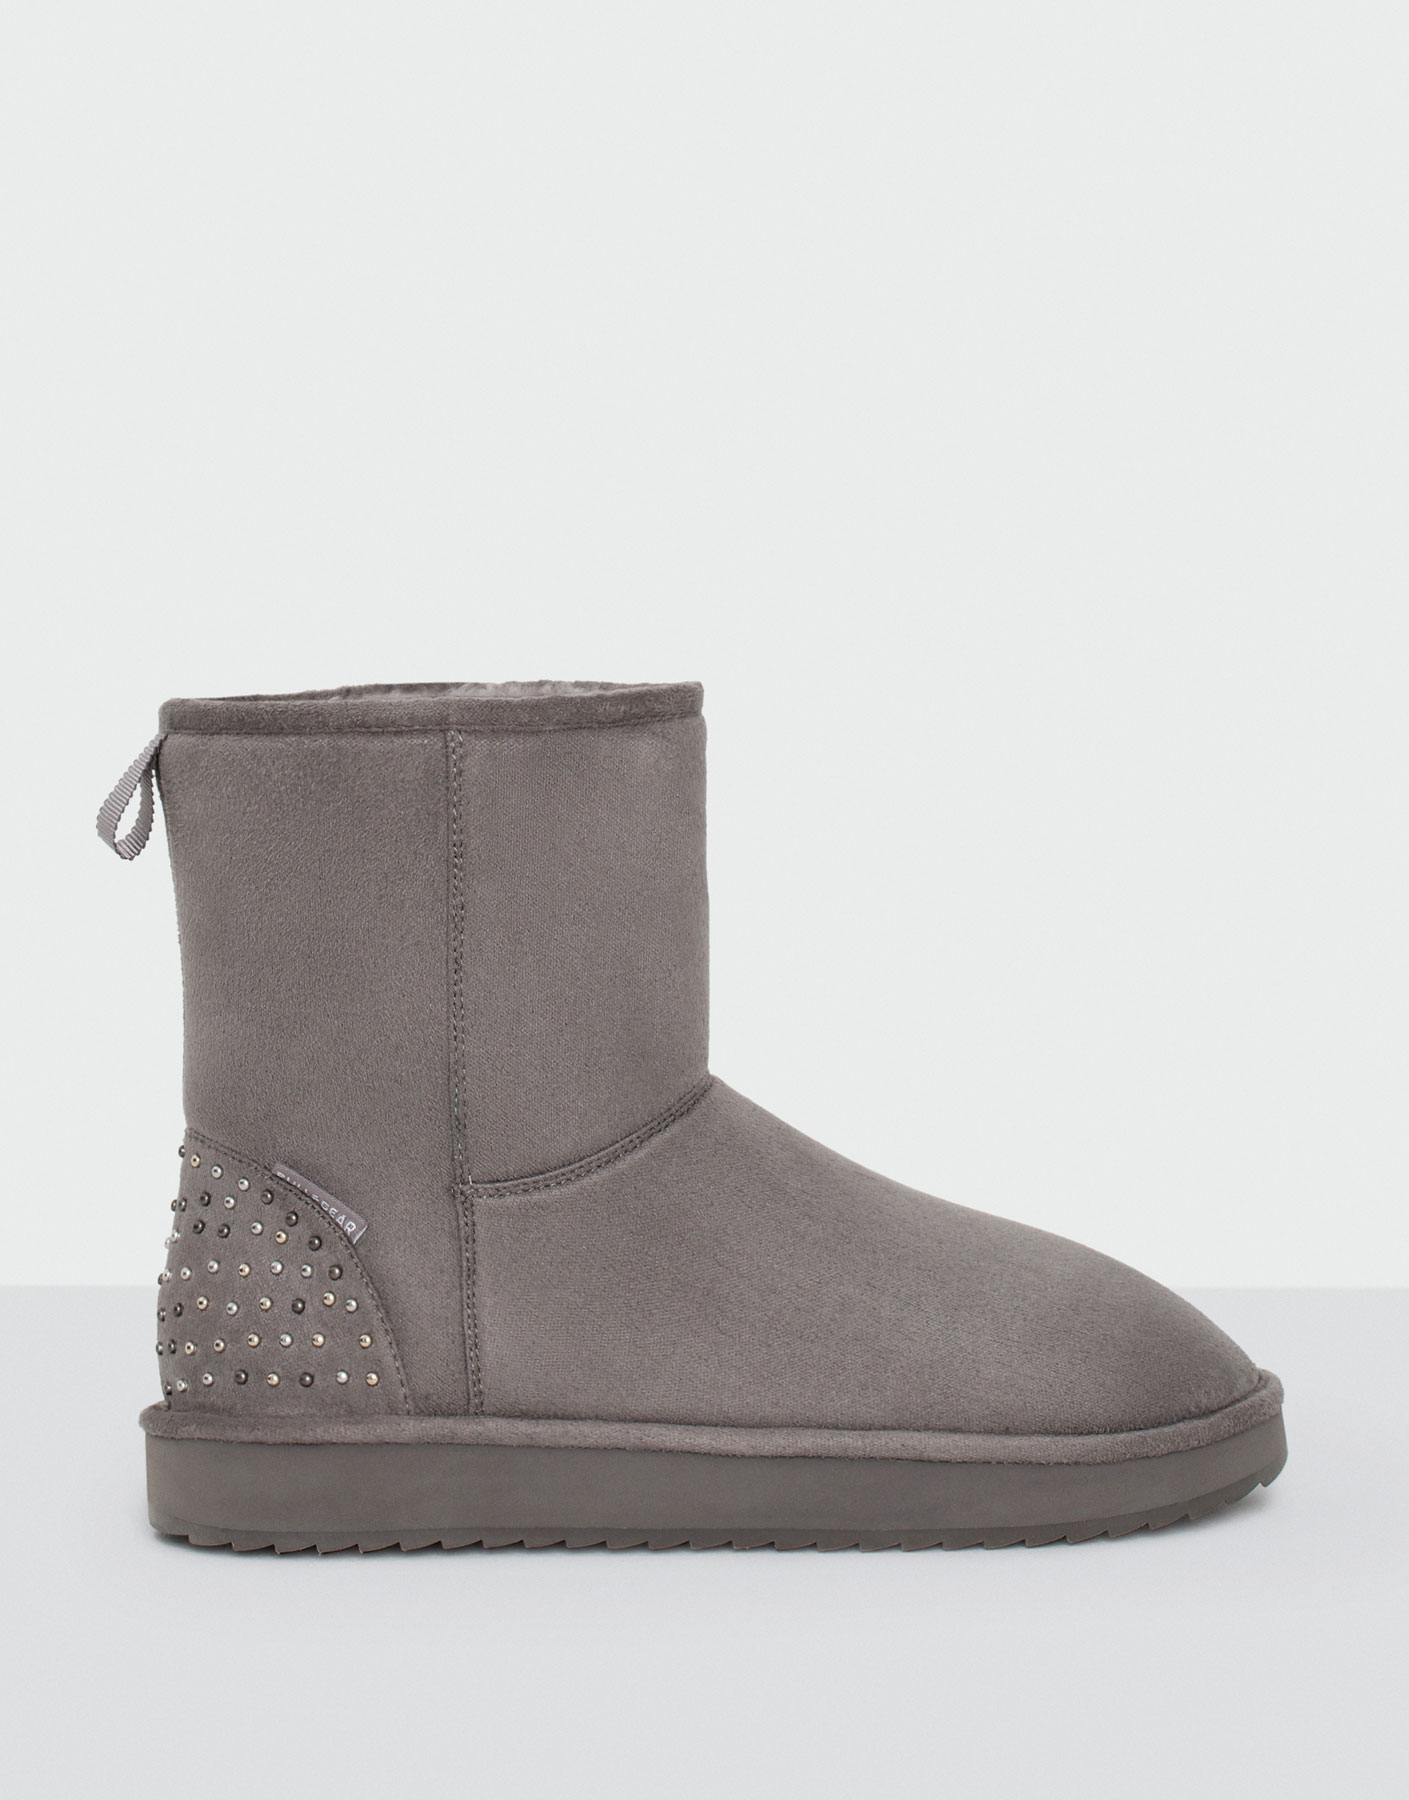 Grey winter ankle boots